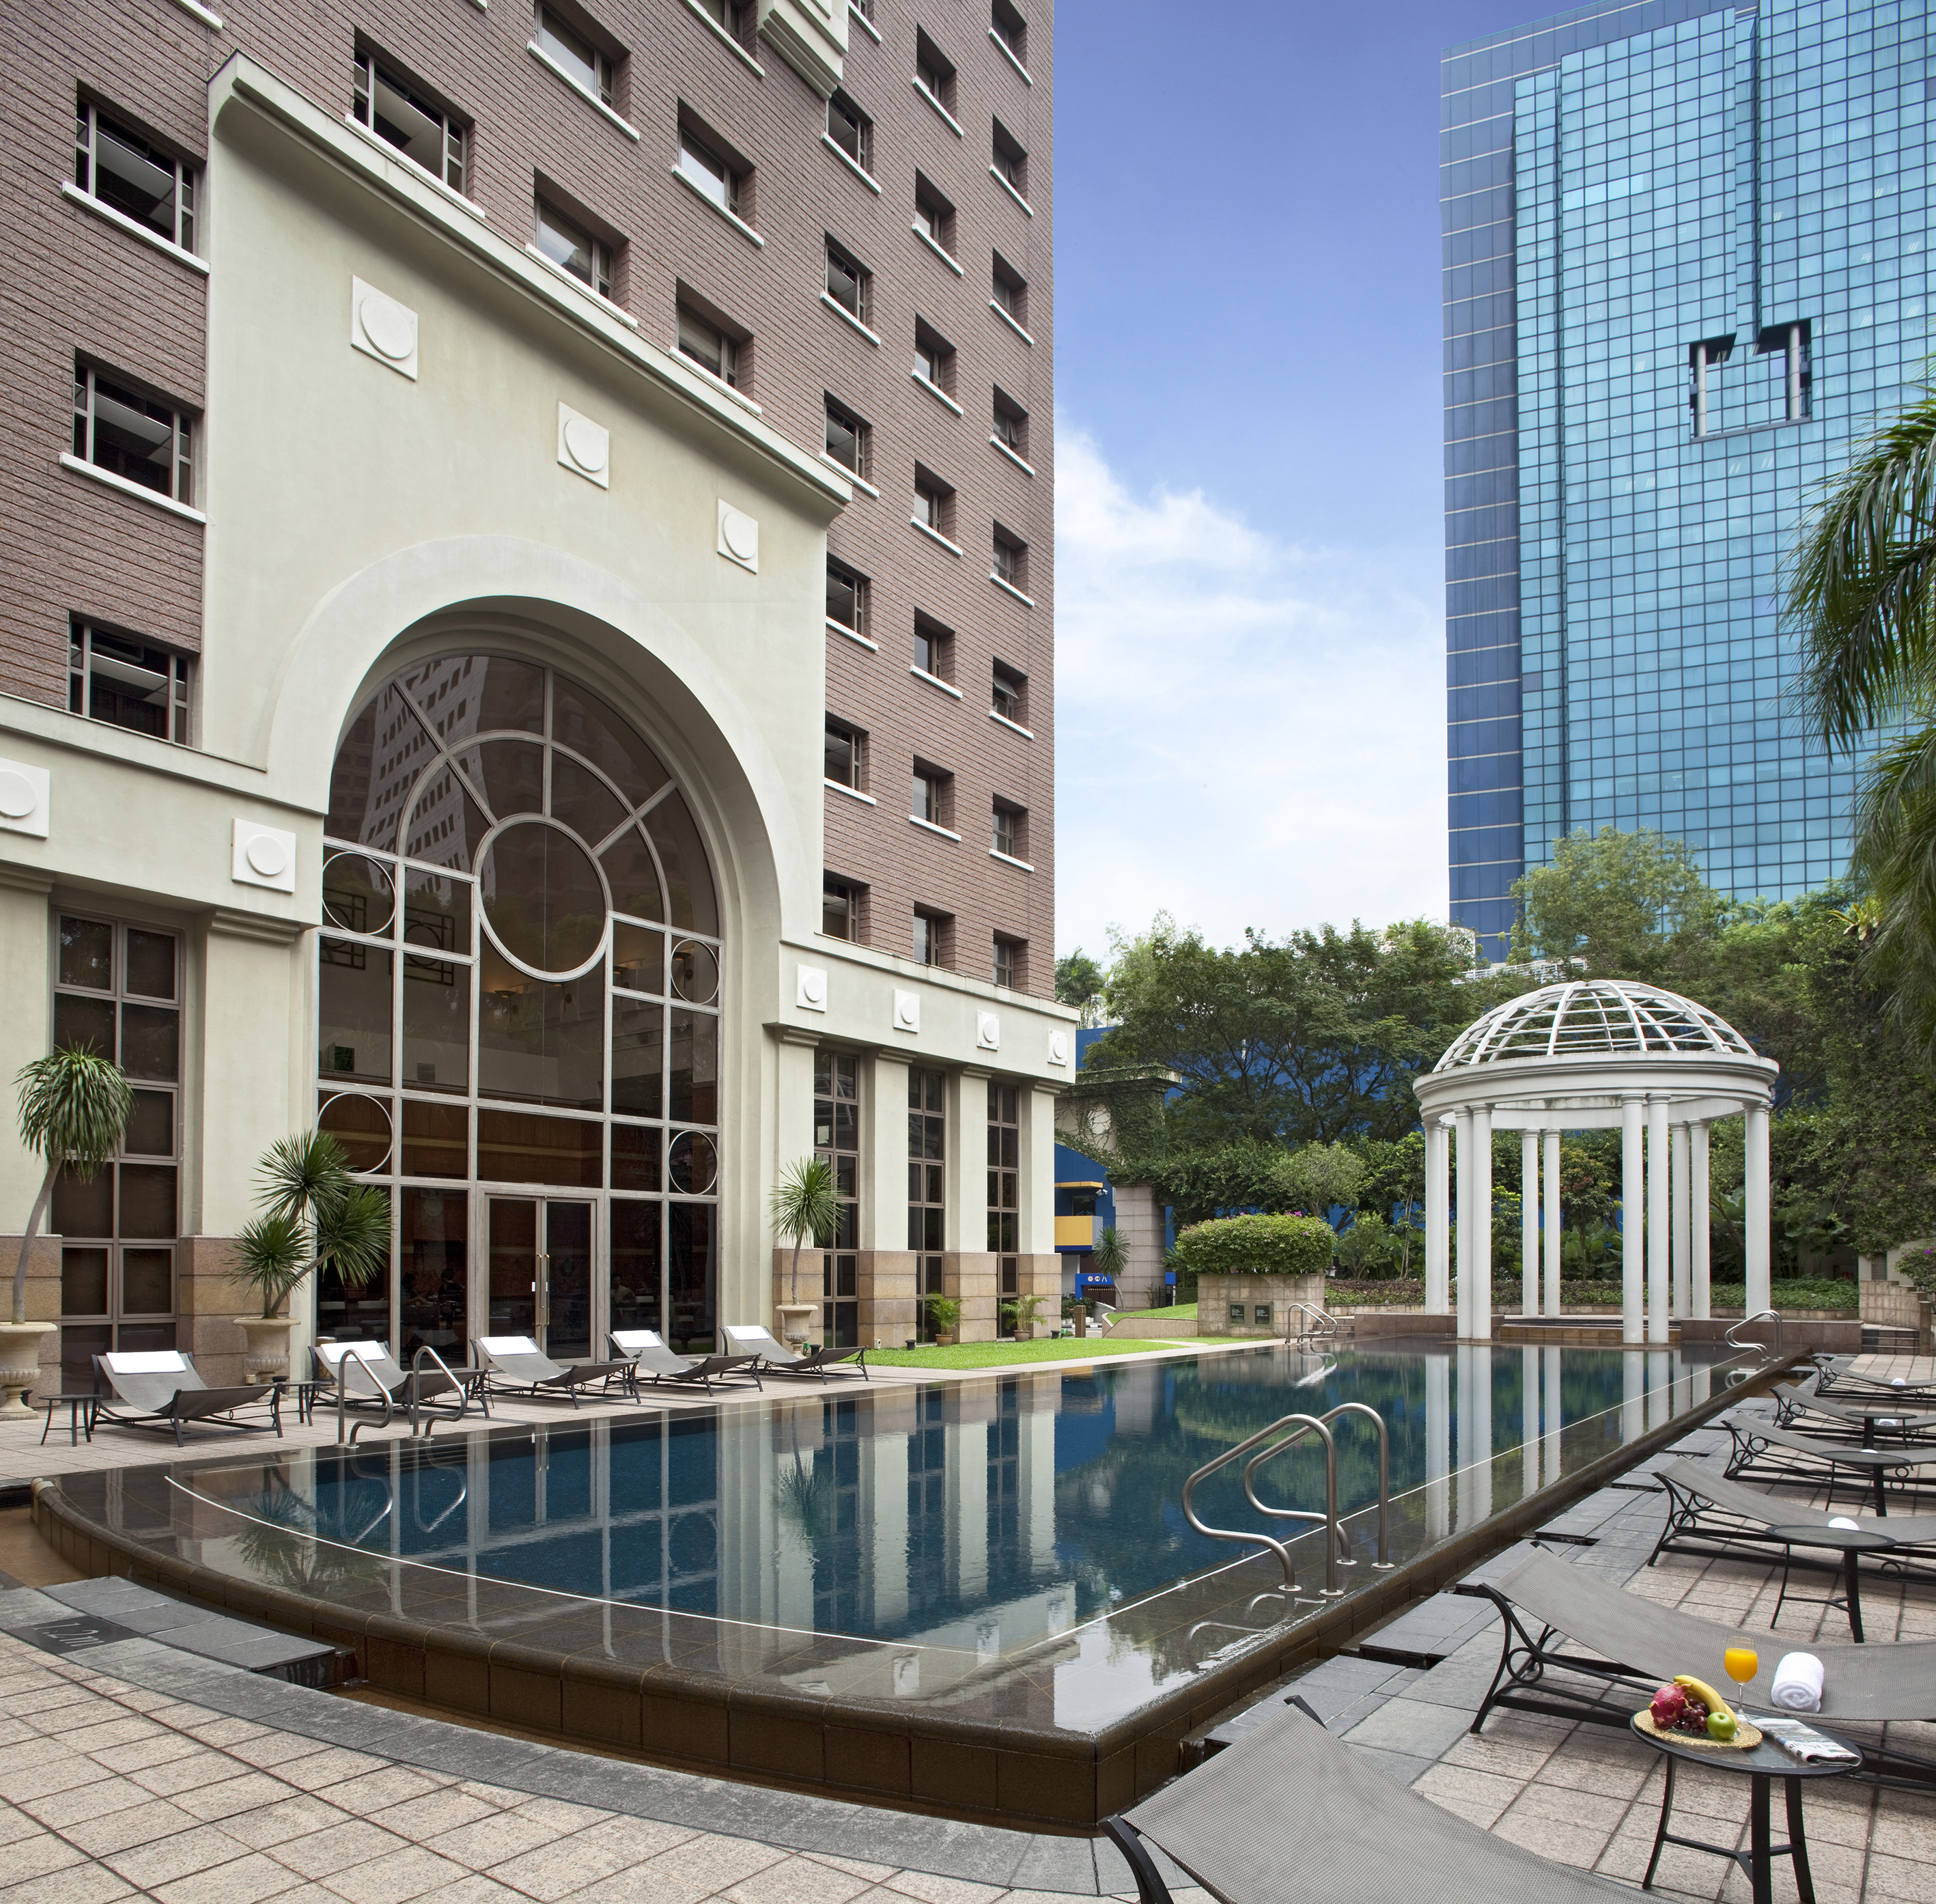 FAR EAST HOSPITALITY - Orchard Parksuites features a swimming pool, Jacuzzi pool, sauna, tennis courts, a gym, BBQ pits, and a business centre - EDGEPROP SINGAPORE